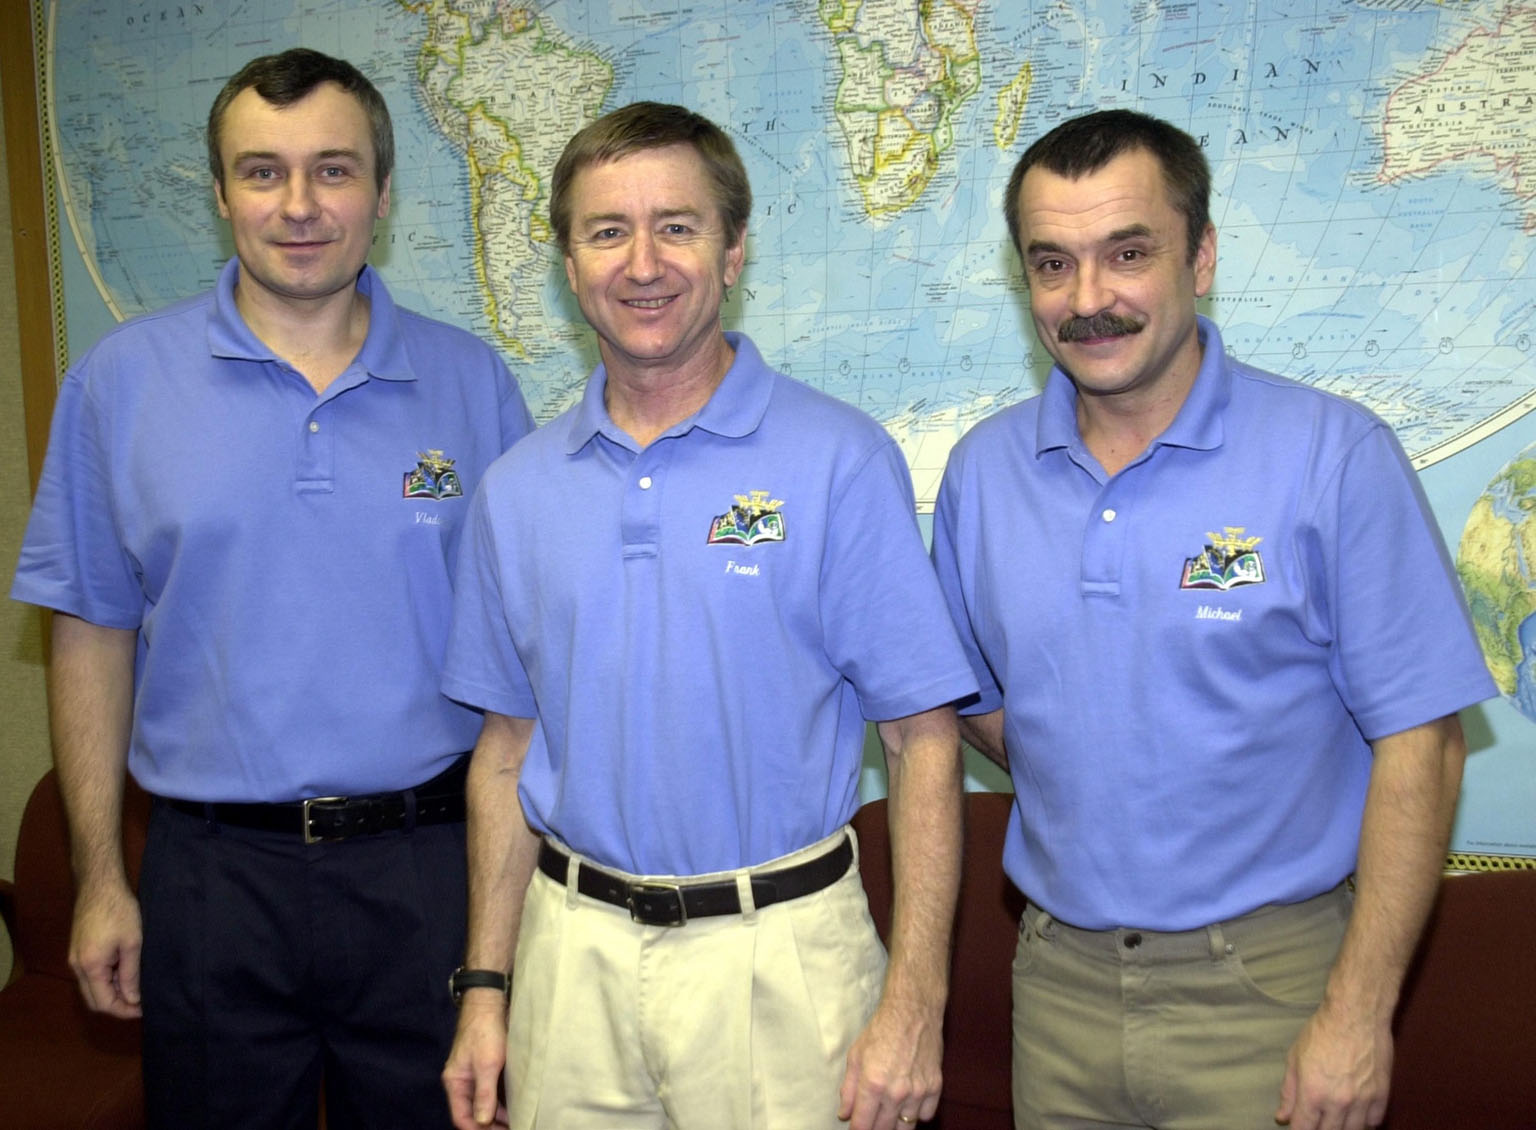 KENNEDY SPACE CENTER, FLA. -- The Expedition 3 crew poses for a group photo one day after their return to Earth from their 129-day stay on the International Space Station. From left are Vladimir Dezhurov, Frank Culbertson and Mikhail Tyurin. They returned aboard the orbiter Endeavour, which landed at KSC at 12:55 p.m. EST (17:55 GMT) Dec. 17, 2001, after completing mission STS-108. The landing is the 57th at KSC in the history of the program STS-108 was the 12th mission to the Space Station. This mission was the 107th flight in the Shuttle program and the 17th flight for the orbiter